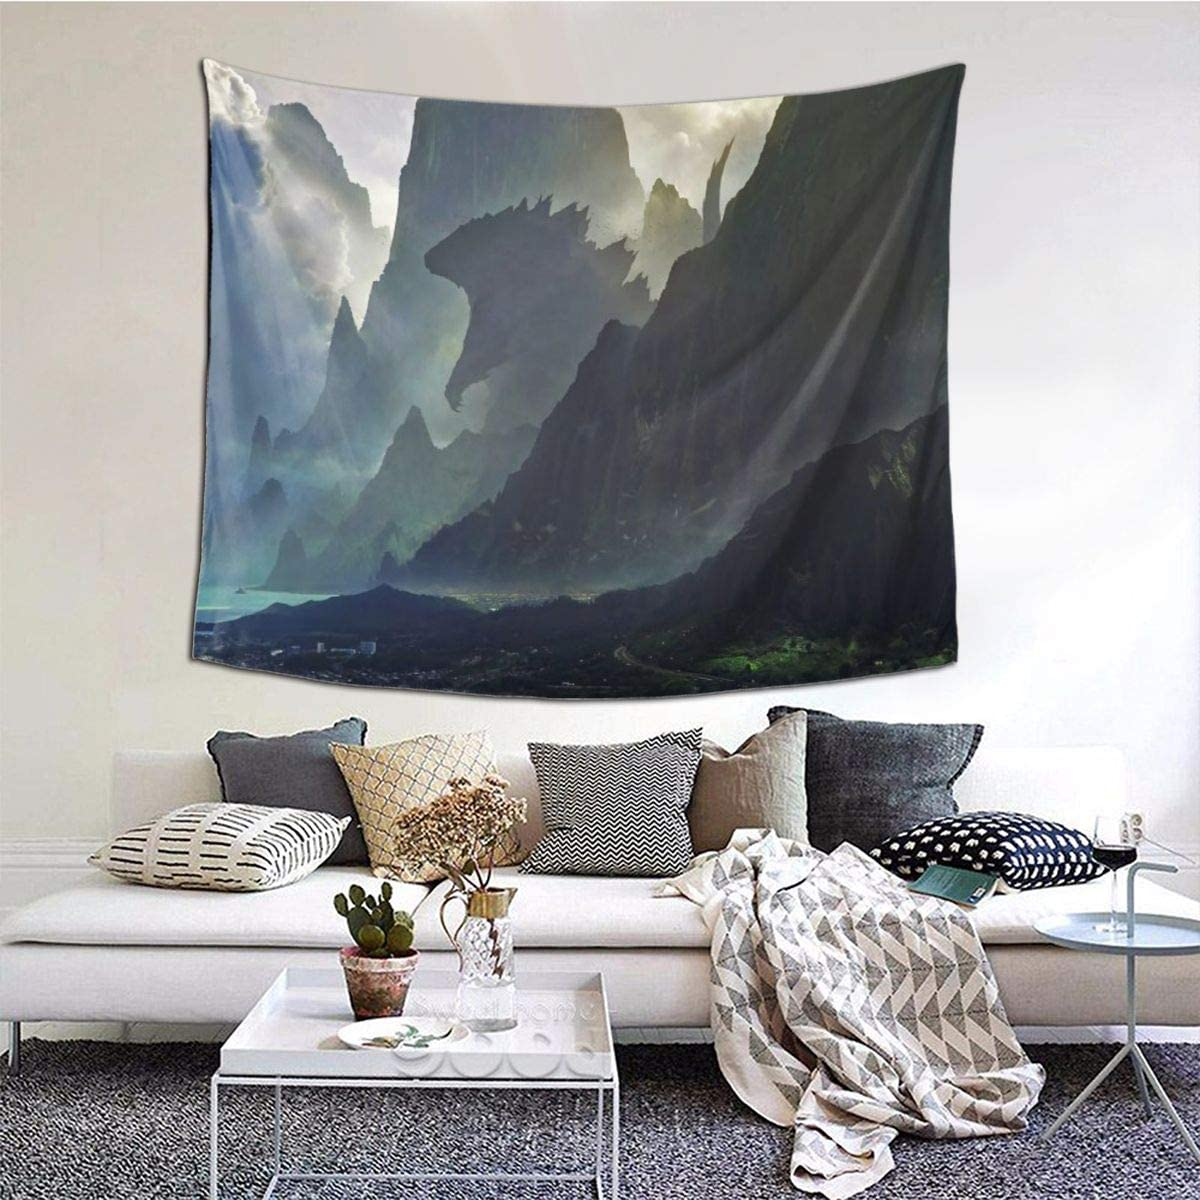 TRdY PAGE Godzilla Out of The Mountain Prints Tapestries Artwork Wall Blanket Tapestry Wall Hanging Wall Art Poster for Dinning Room Party Modern Wall Decor 90x60in 229x152cm